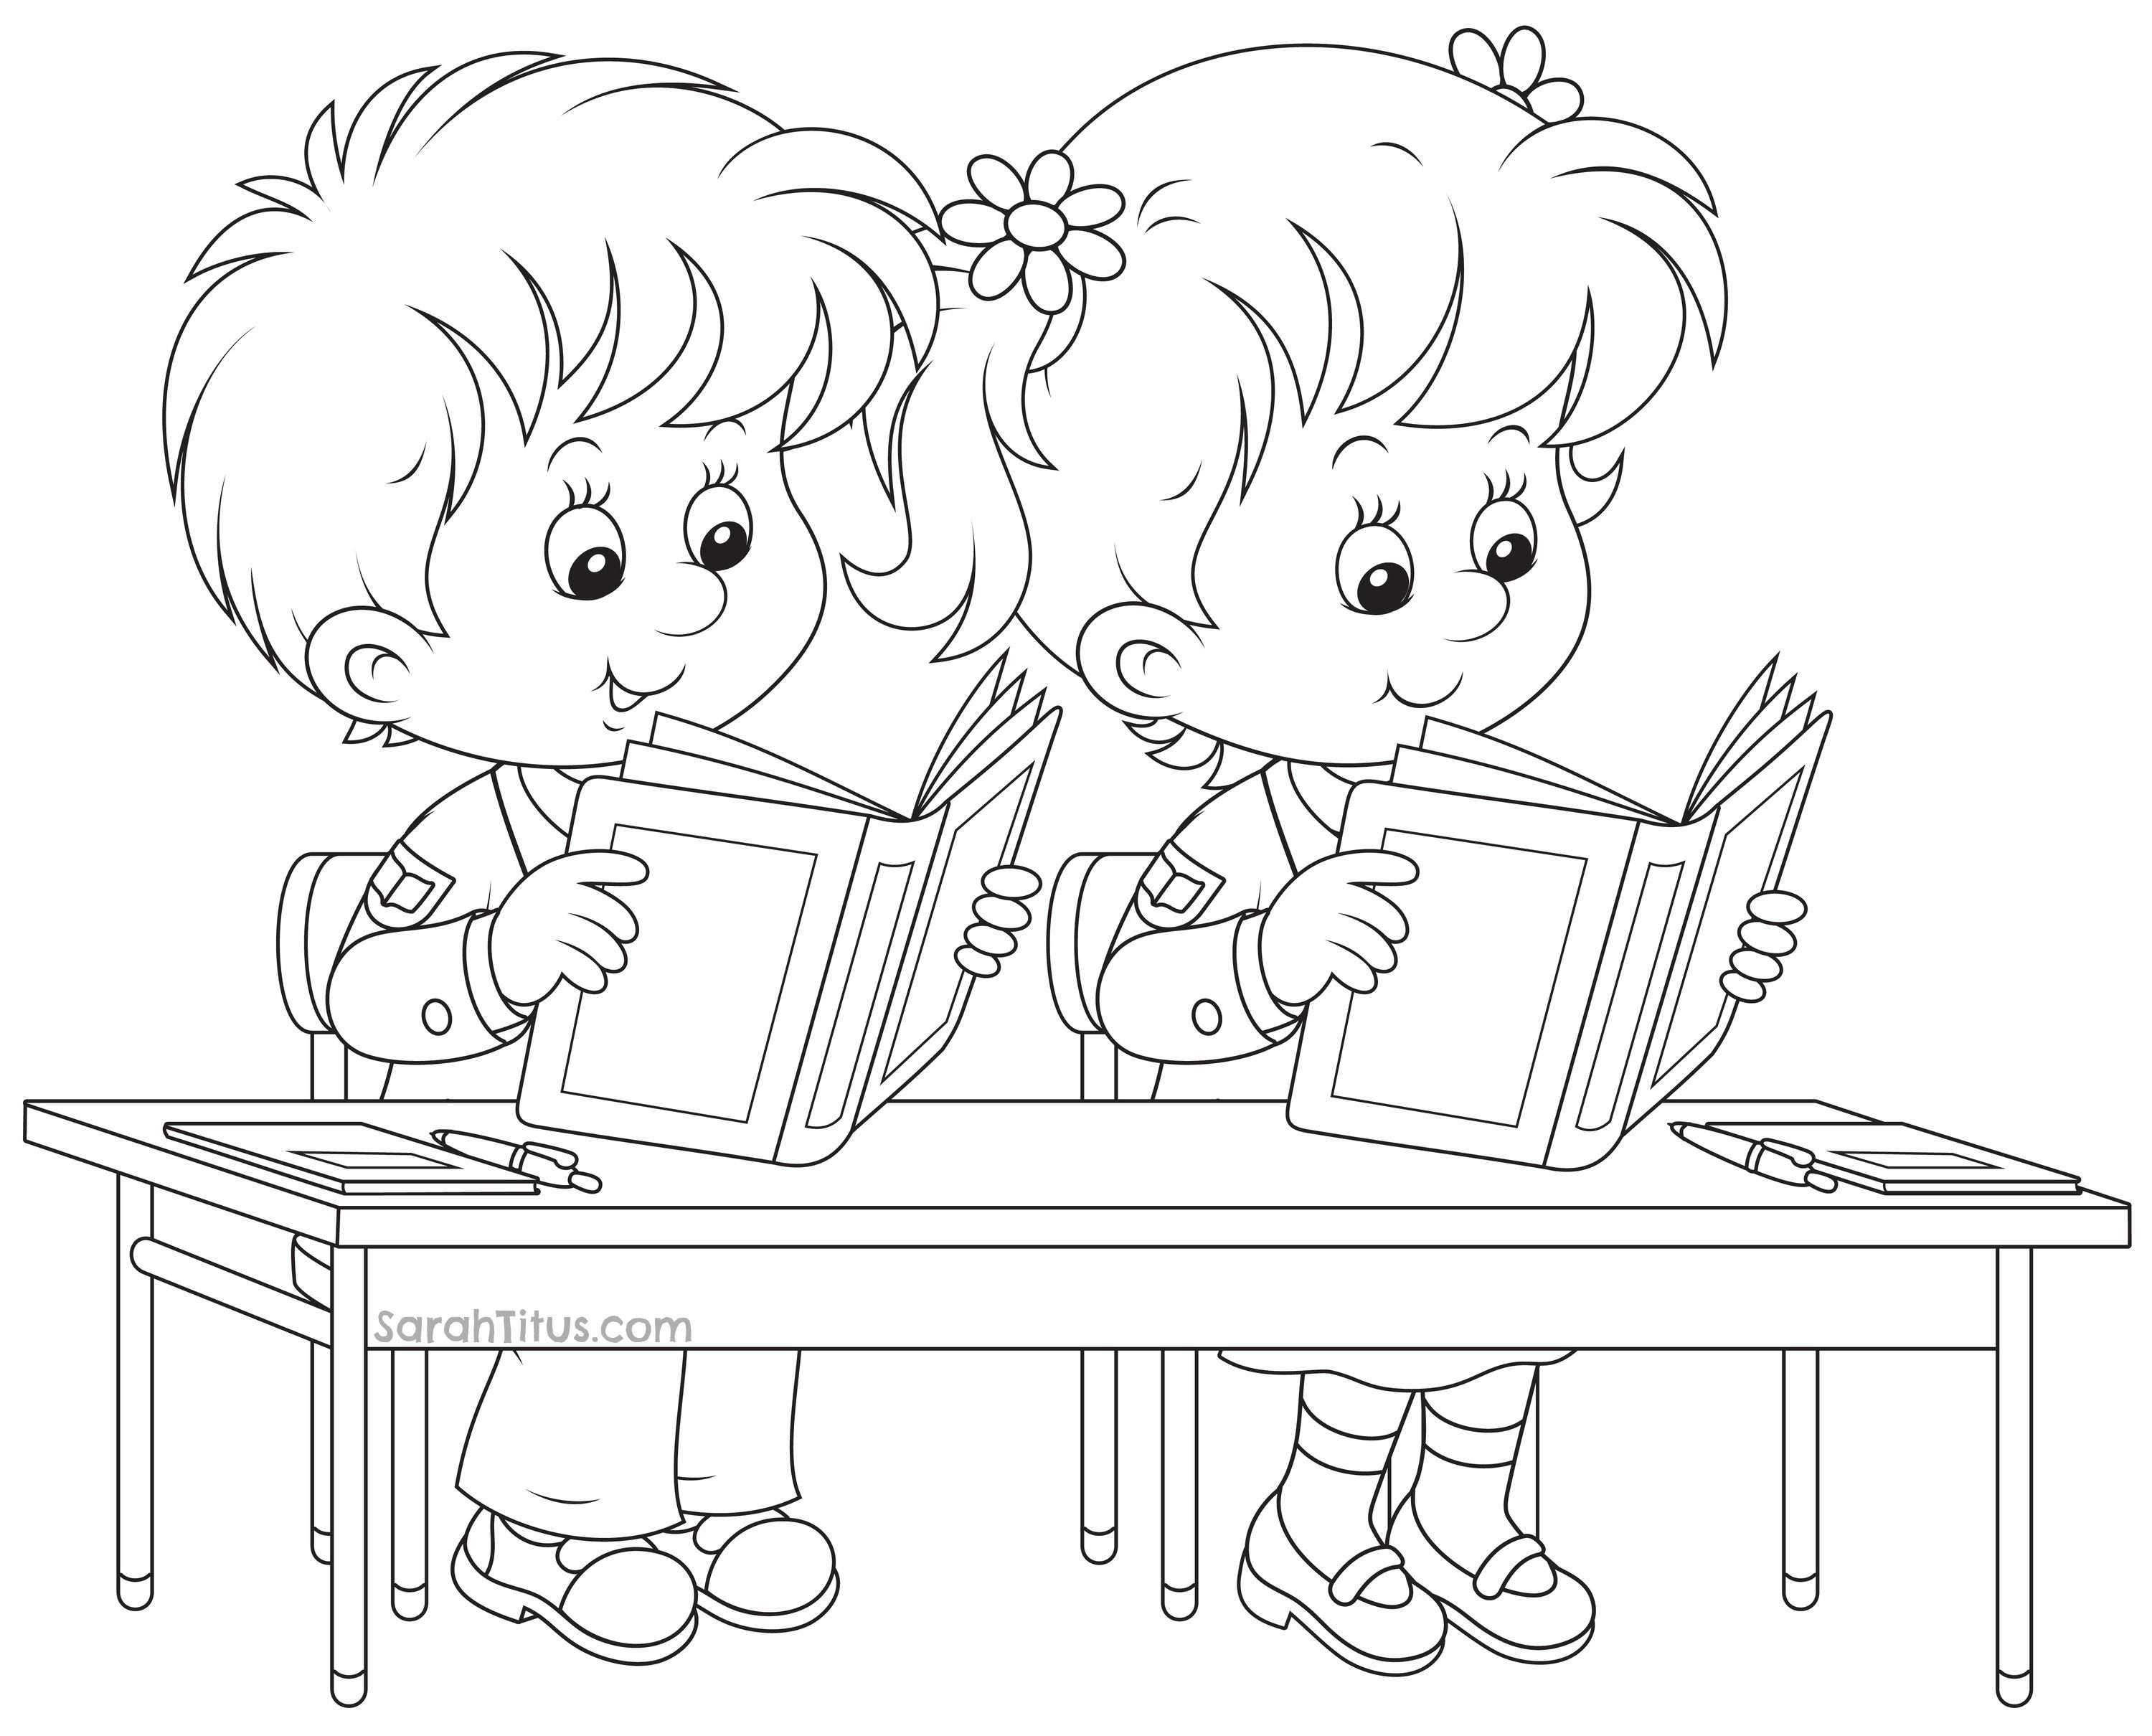 Back To School Coloring Pages Kleurplaten Kleurplaten Voor